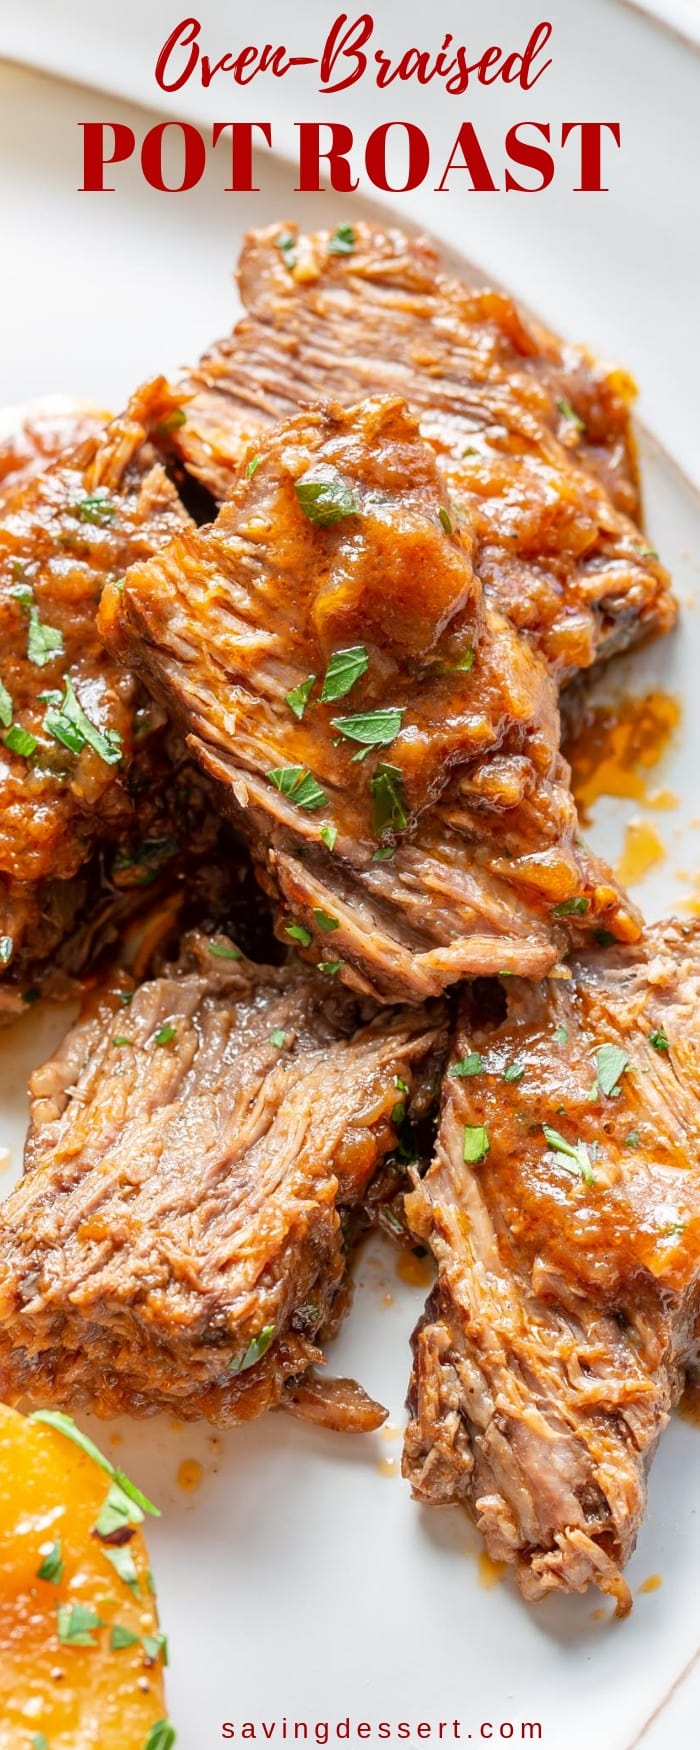 Juicy, tender and beautifully flavored, our easy Oven-Braised Pot Roast Recipe is the perfect weekend dinner solution! This roast is the total umami experience! #savingroomfordessert #braised #potroast #roast #sundaysupper #ovenbraisedroast #ovenbraisedpotroast #potroastrecipe #company #slowcookedpotroast